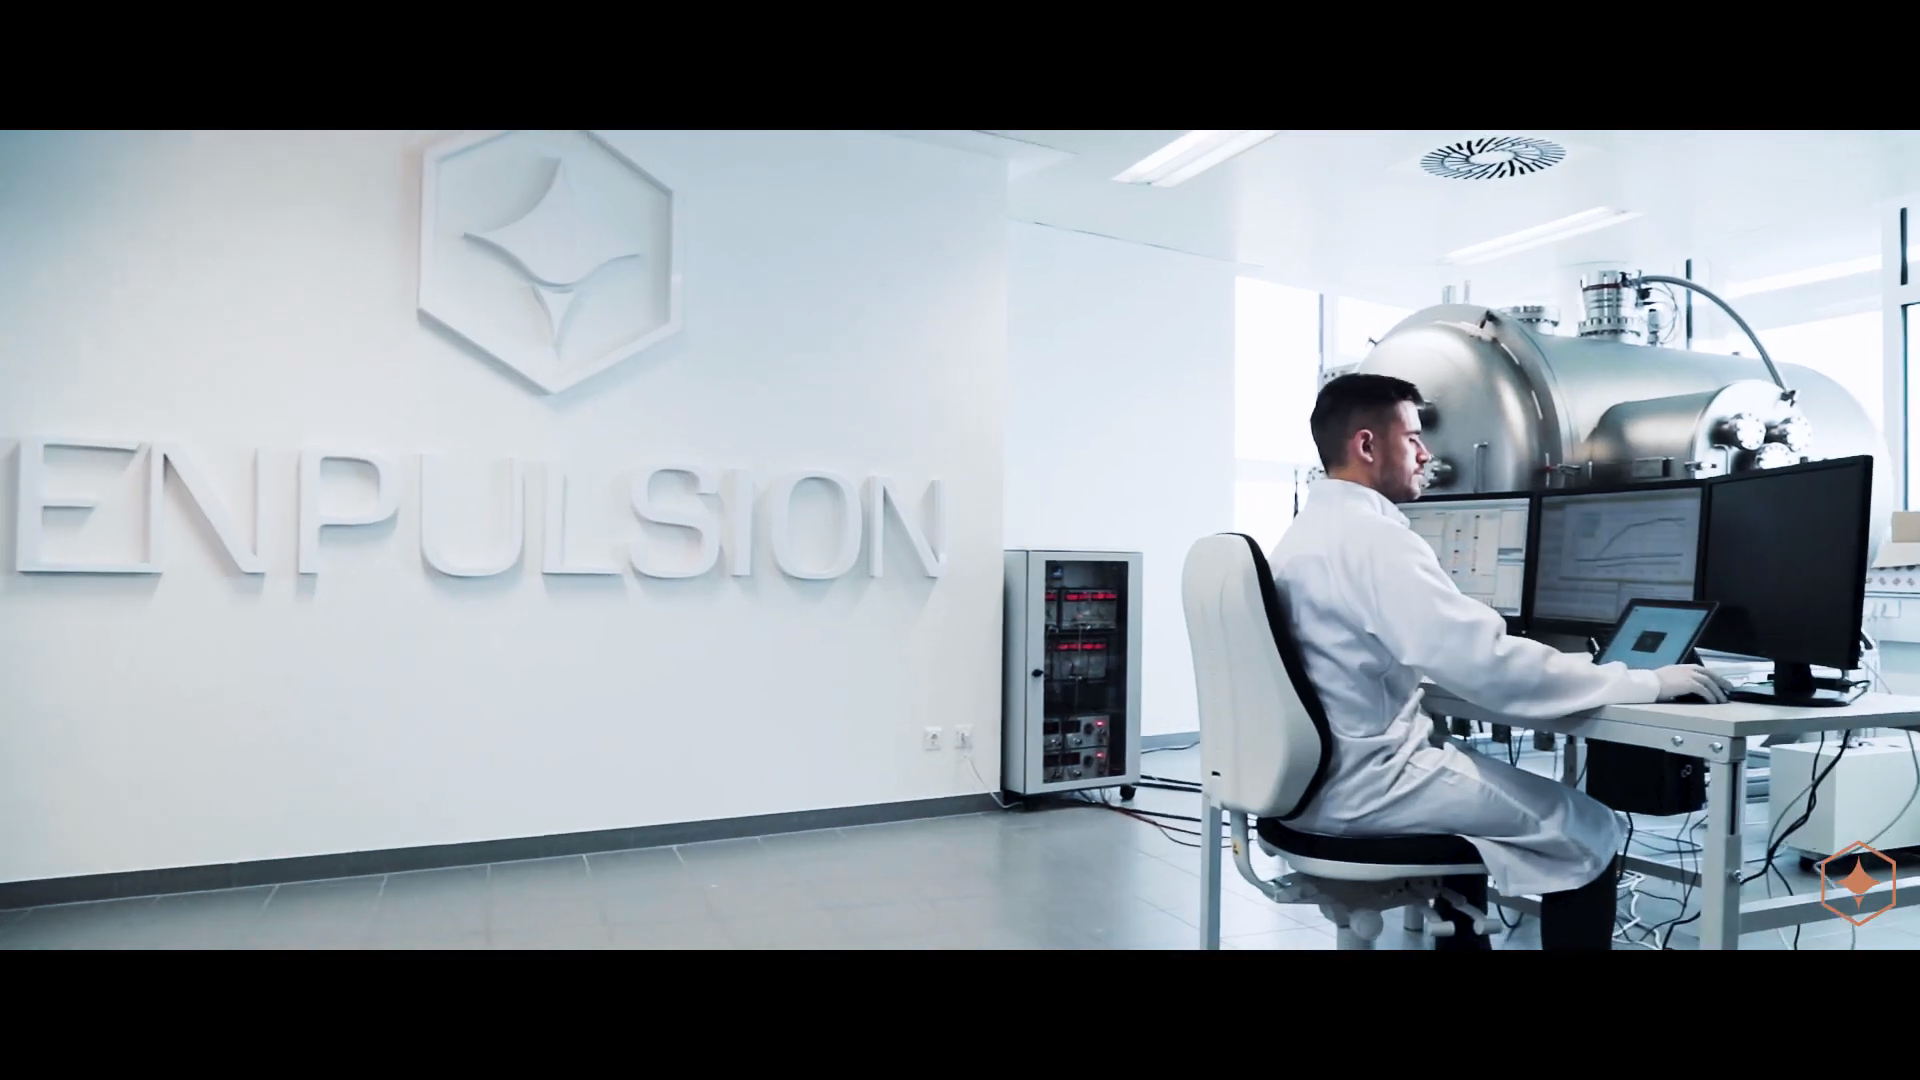 Enpulsion Corporate Video